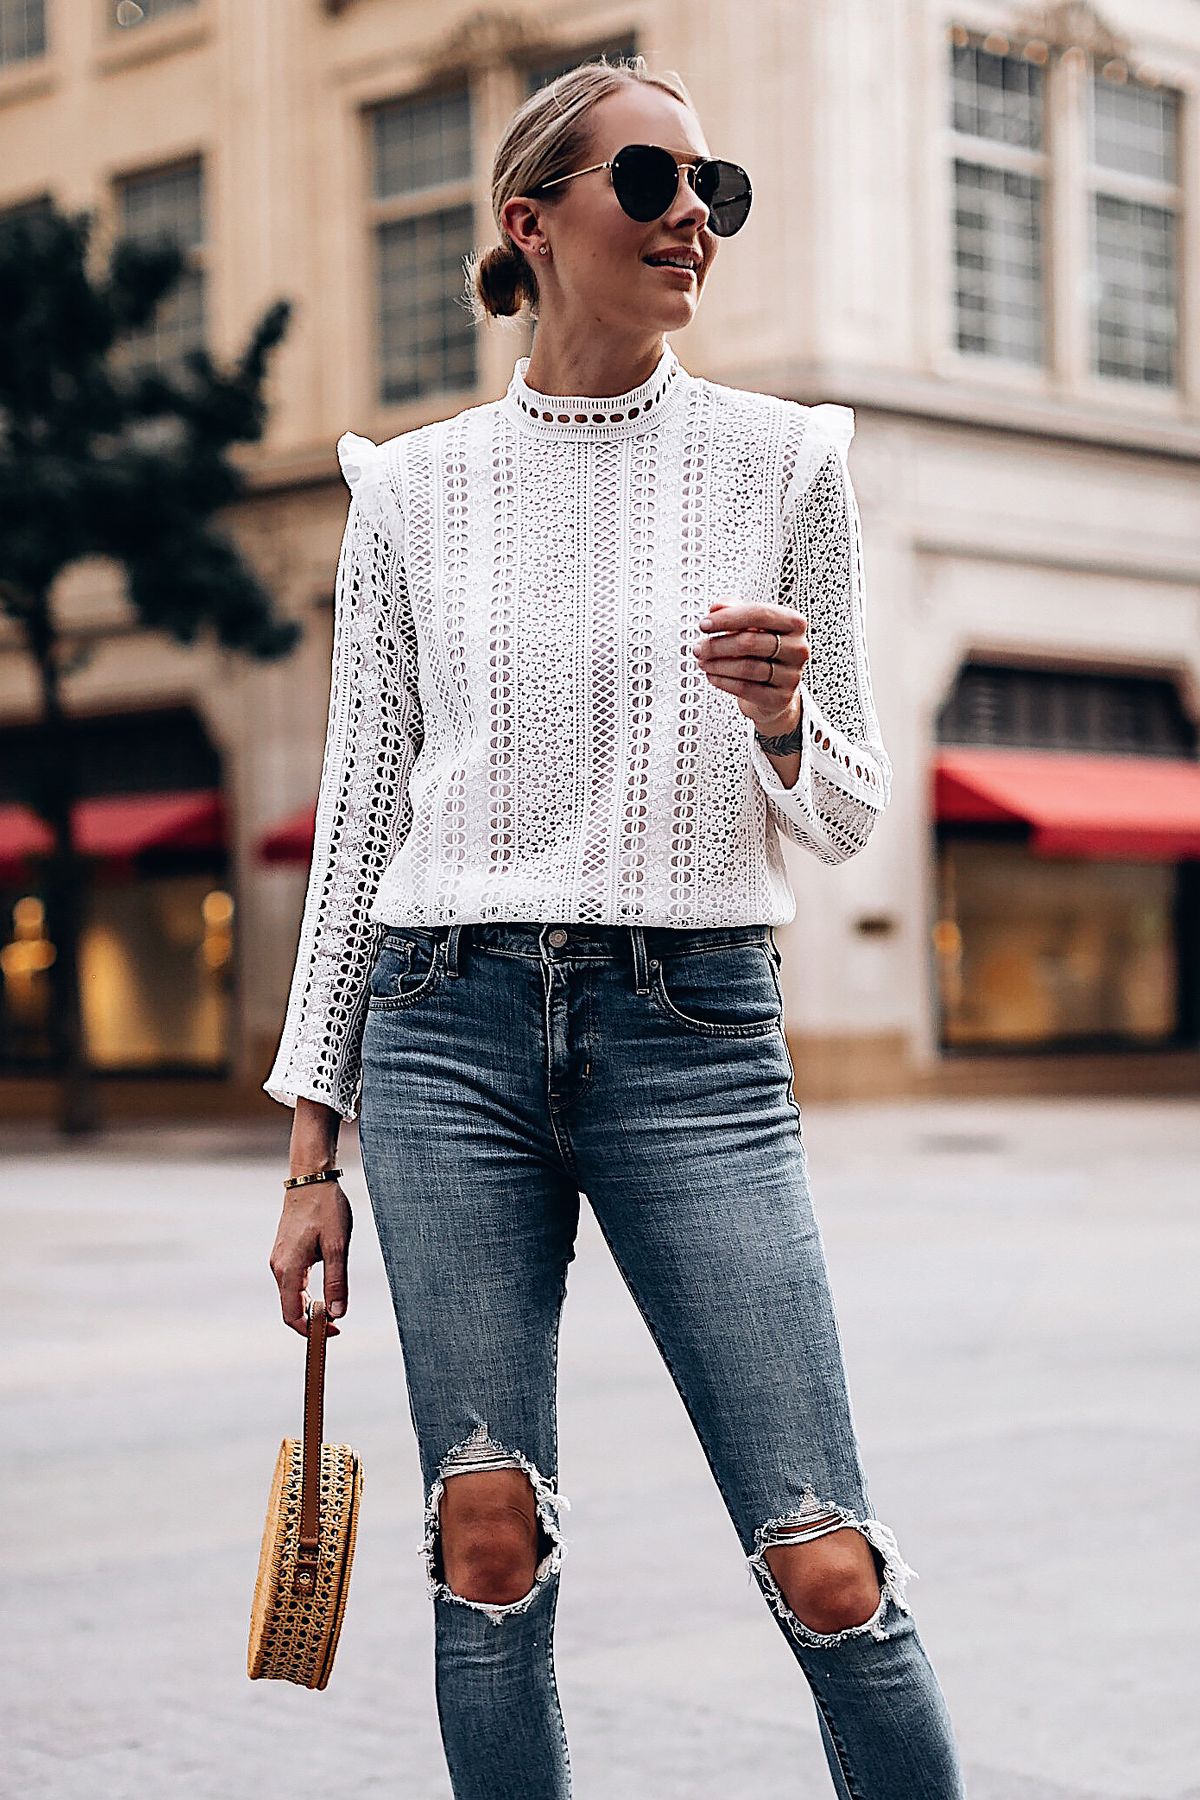 Blonde Woman Wearing Fashion Jackson Bloomingdales AQUA White Lace Ruffle Top Levis 721 Skinny Jeans Serpui Straw Circle Handbag Quay Aviator Sunglasses Fashion Jackson San Diego Fashion Blogger Street Style